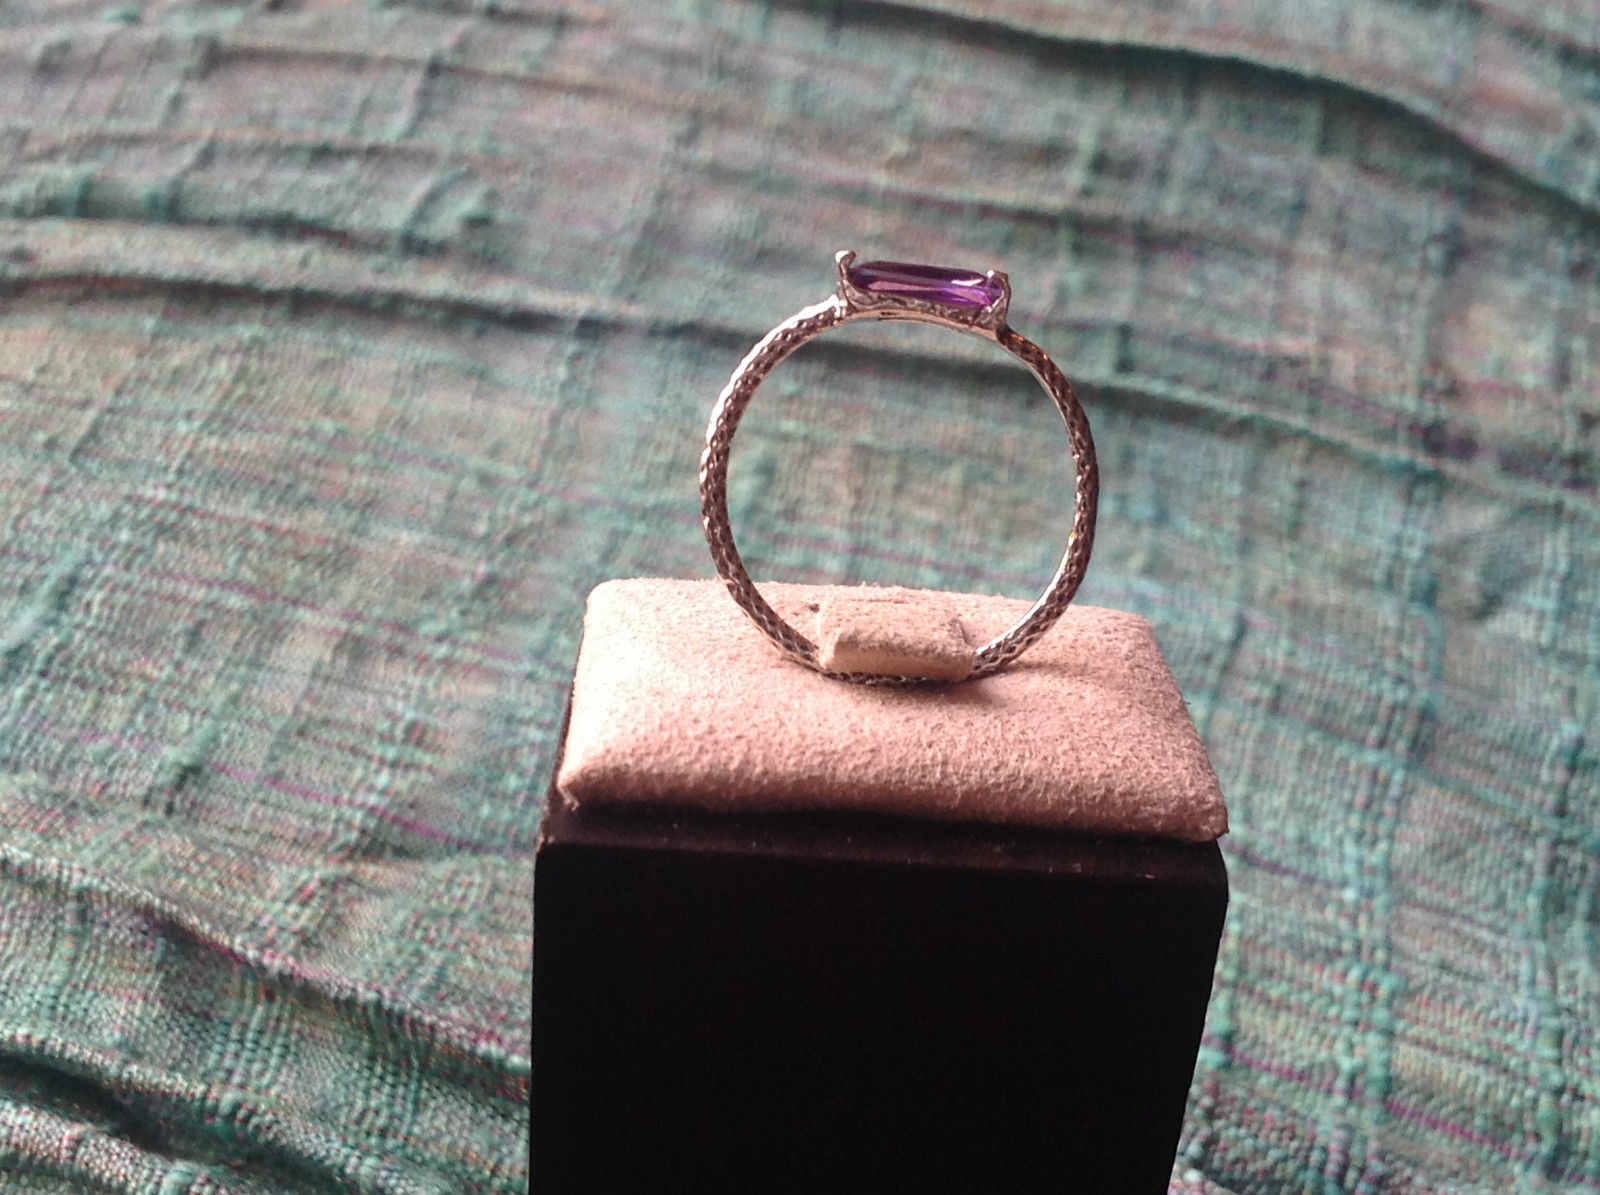 Glittering  Light Catching CZ Synthetic Amethyst Ring Size 7 OR 8 choice